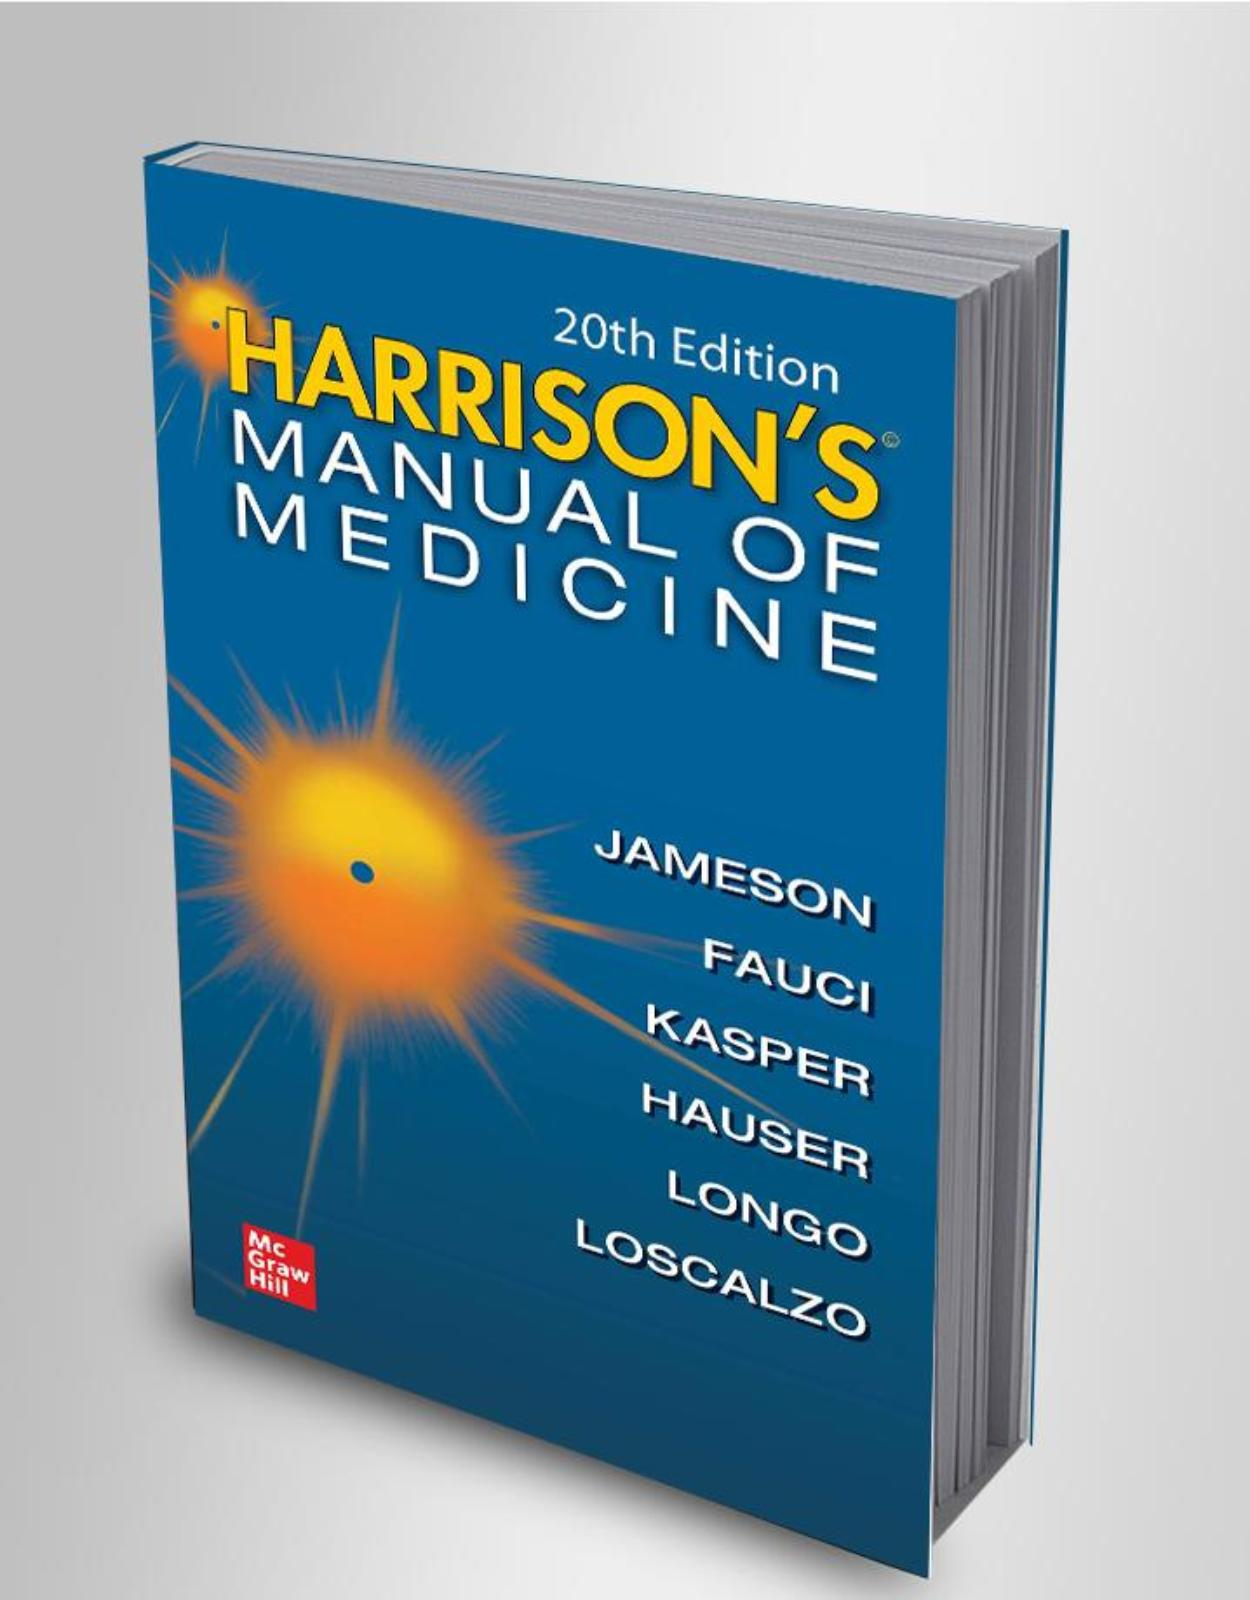 Harrisons Manual of Medicine, 20th Edition